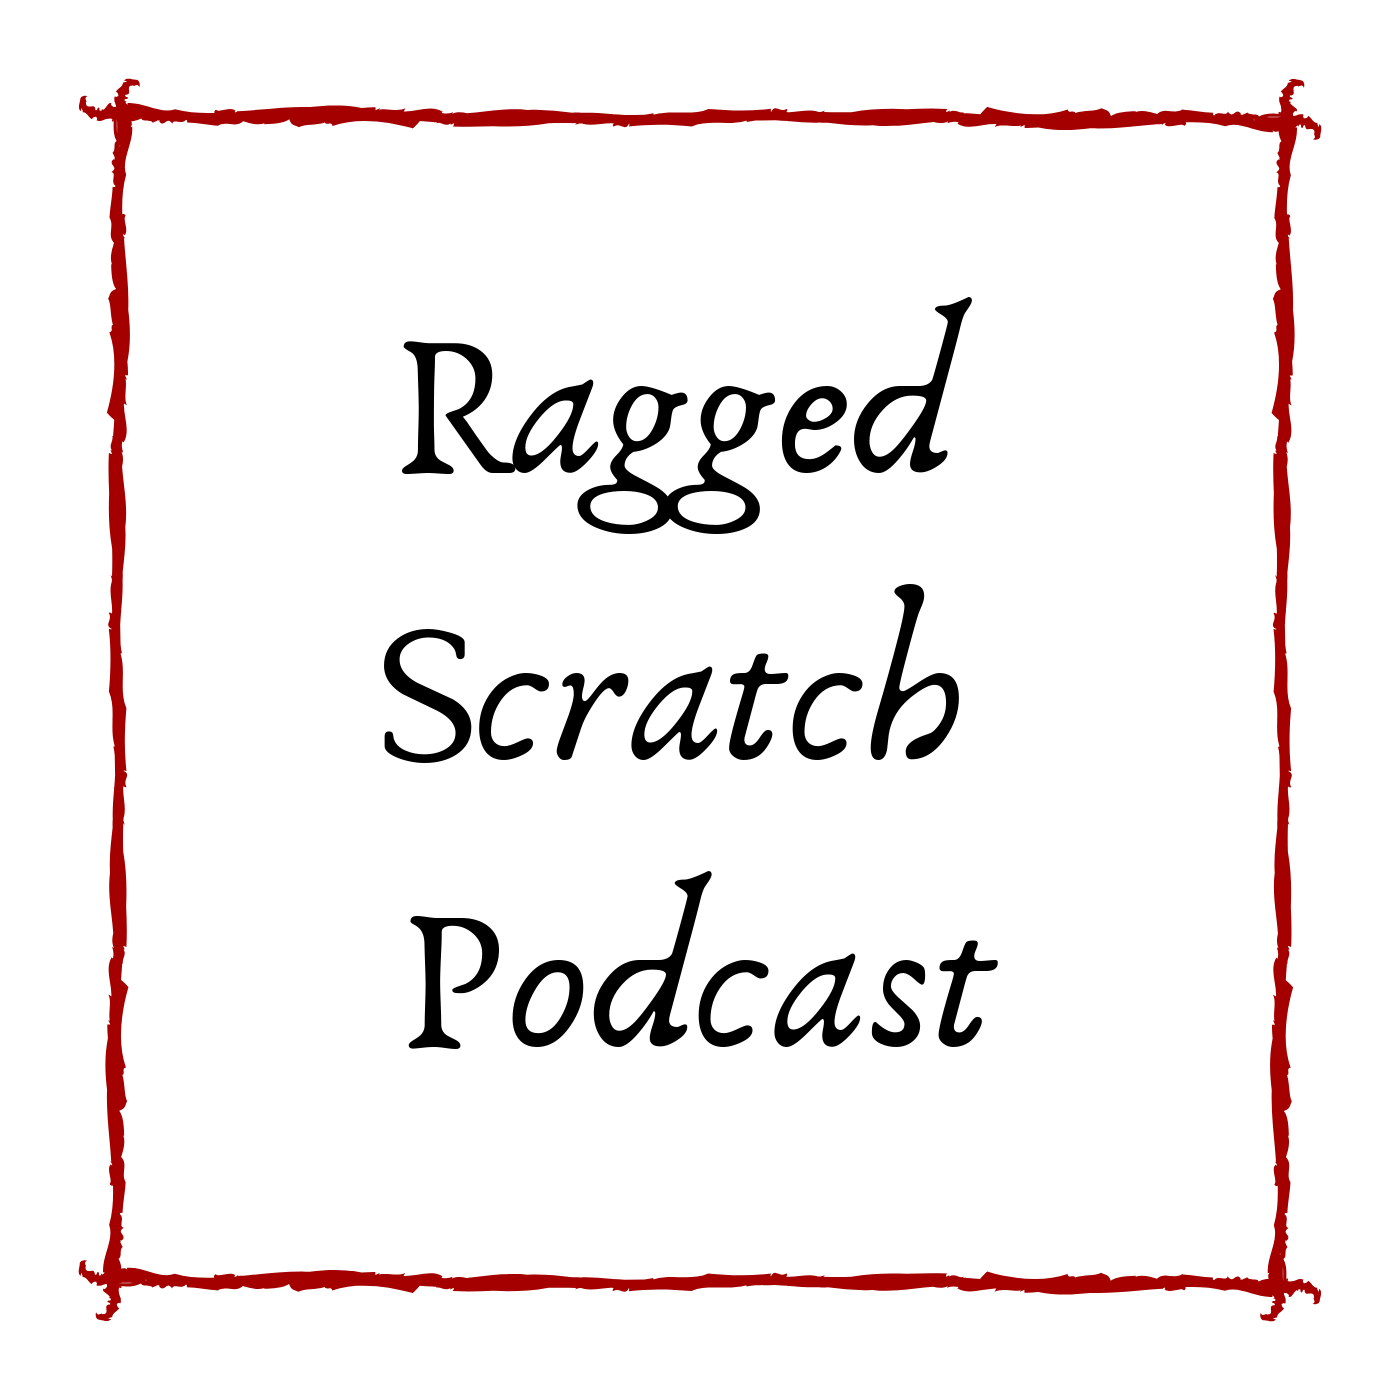 Ragged Scratch Podcast